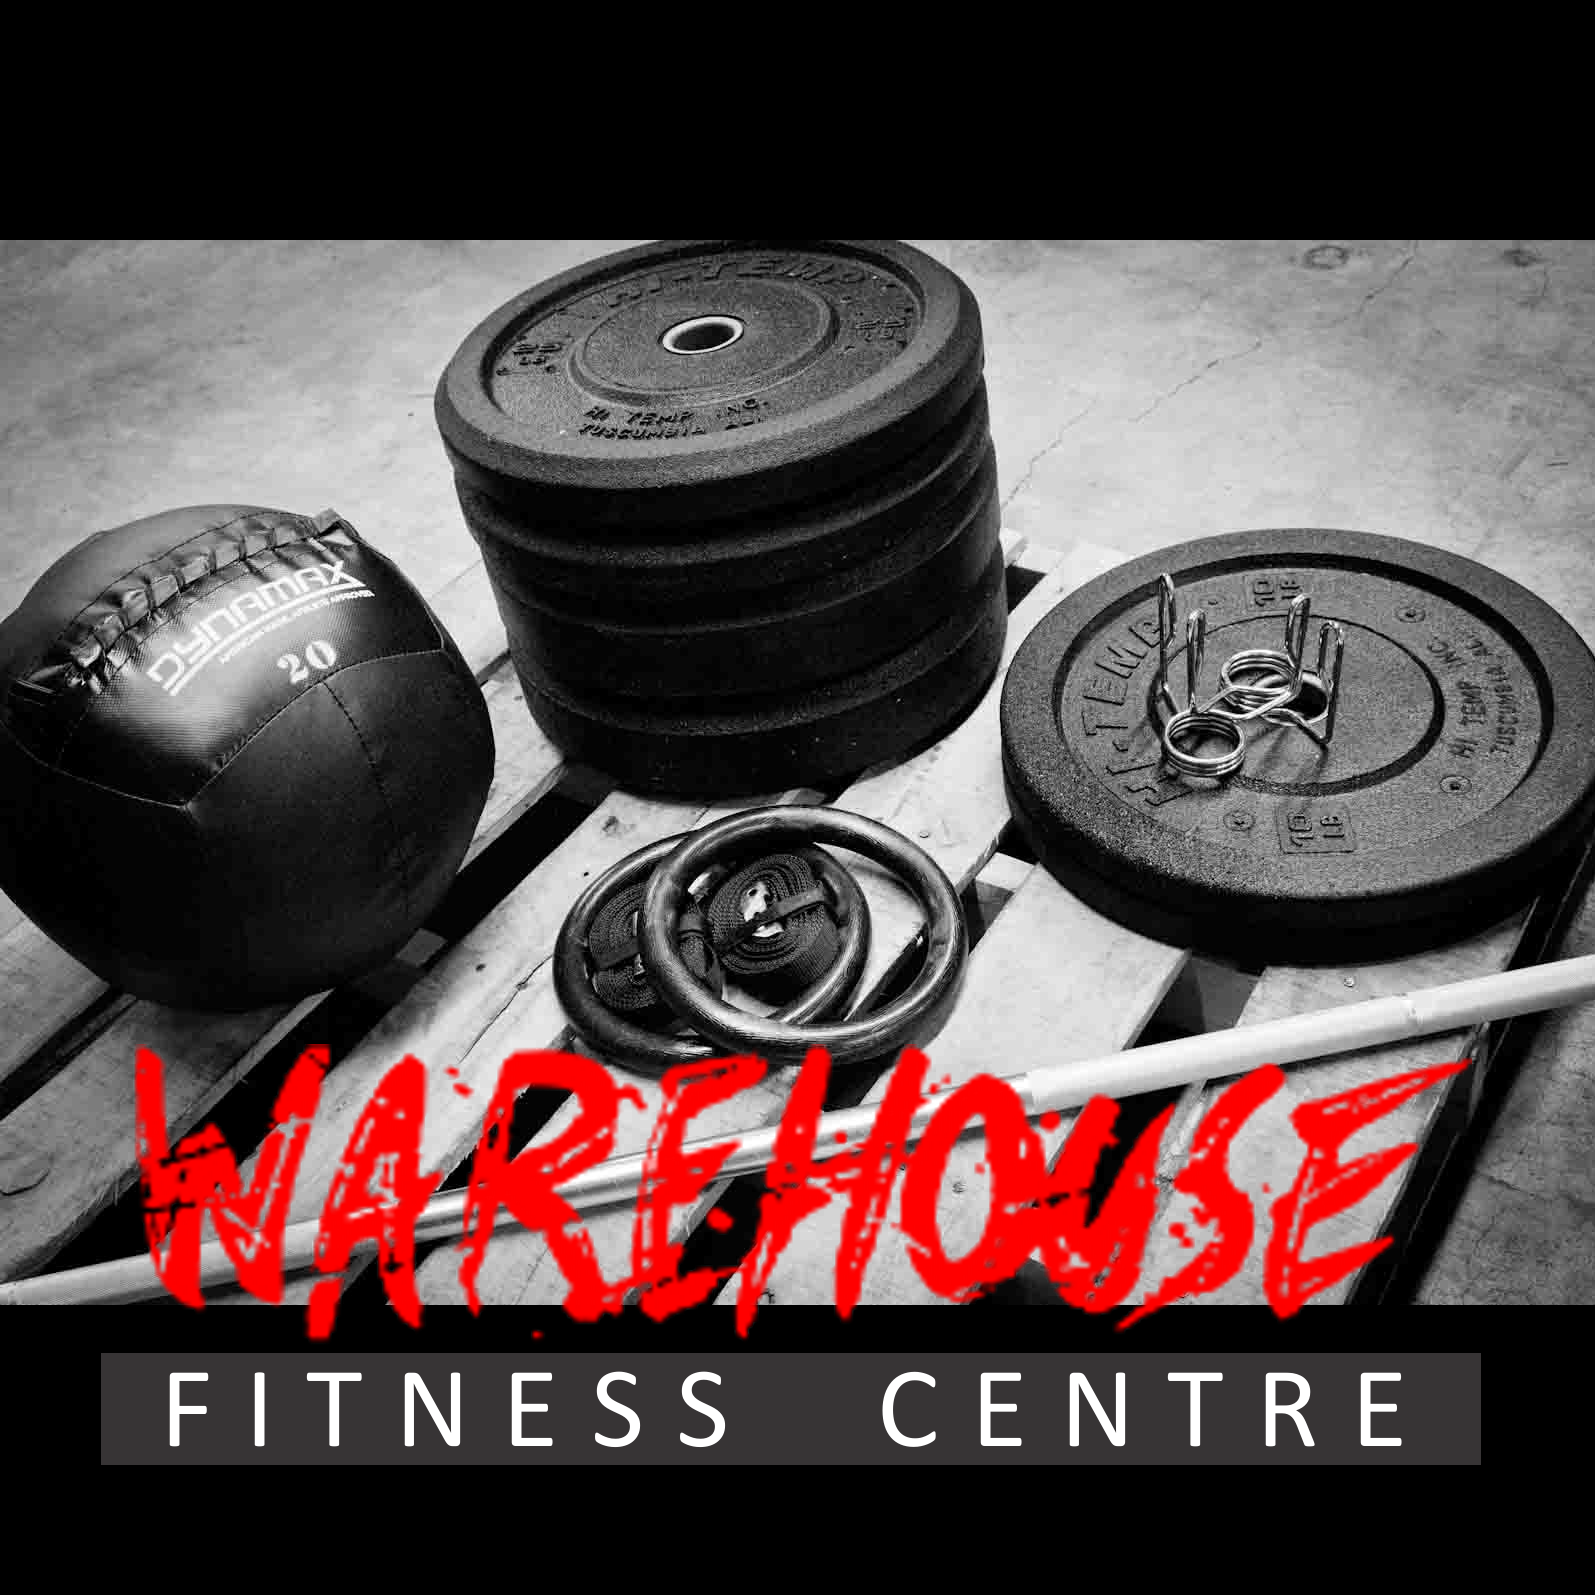 Warehouse Fitness Centre - photo